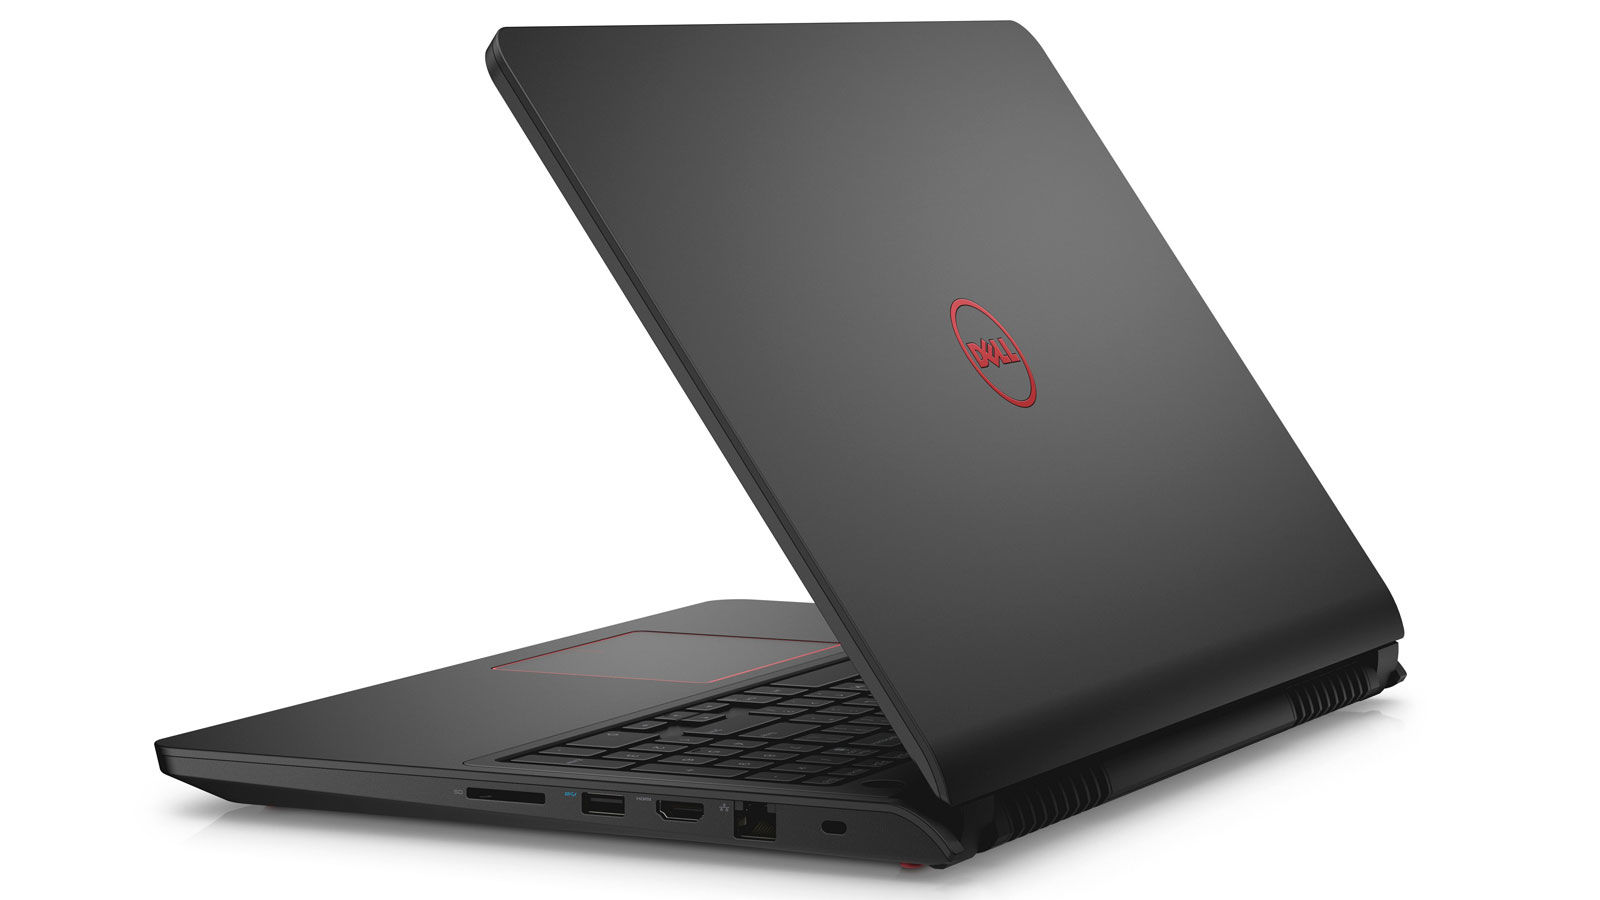 dell-inspiron-15-7559-review-side-and-back